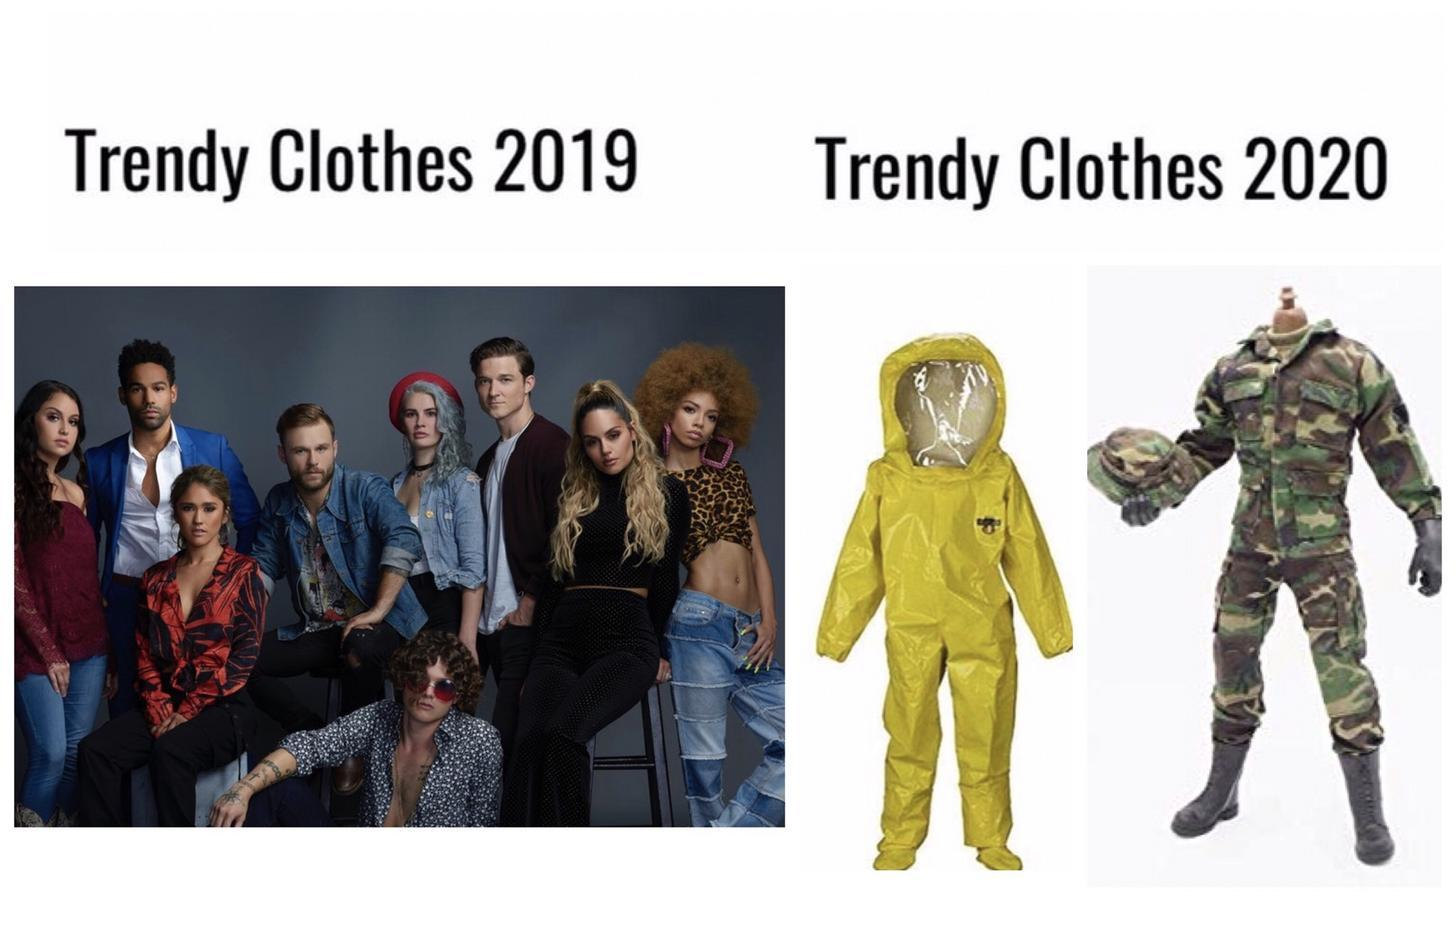 Trendy clothes - meme